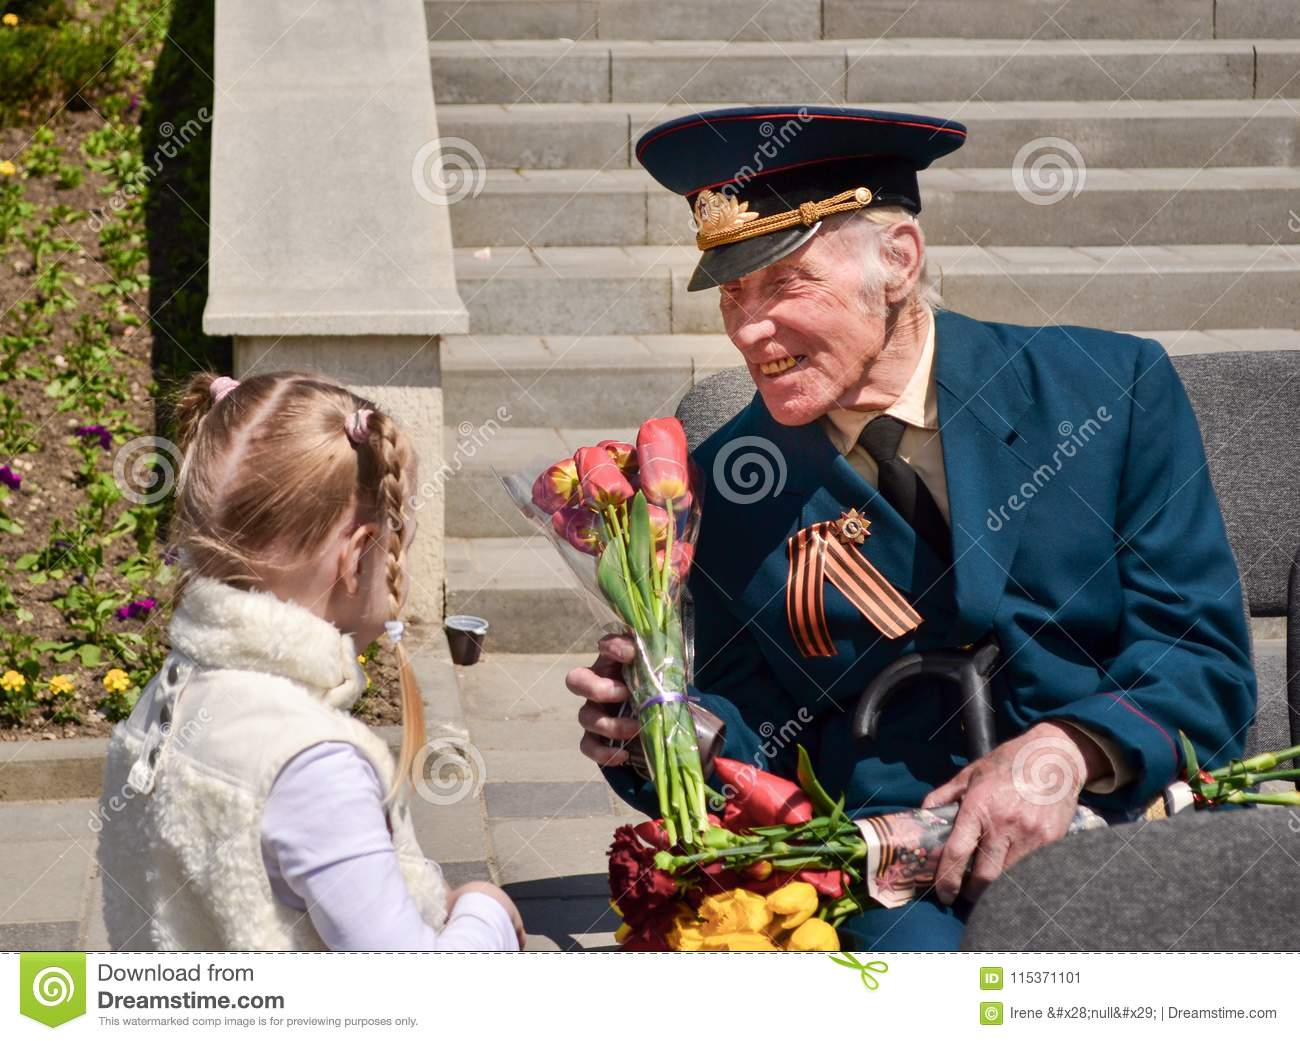 PYATIGORSK, RUSSIA - MAY 09, 2011: Girl gives flowers to veteran on Victory Day.